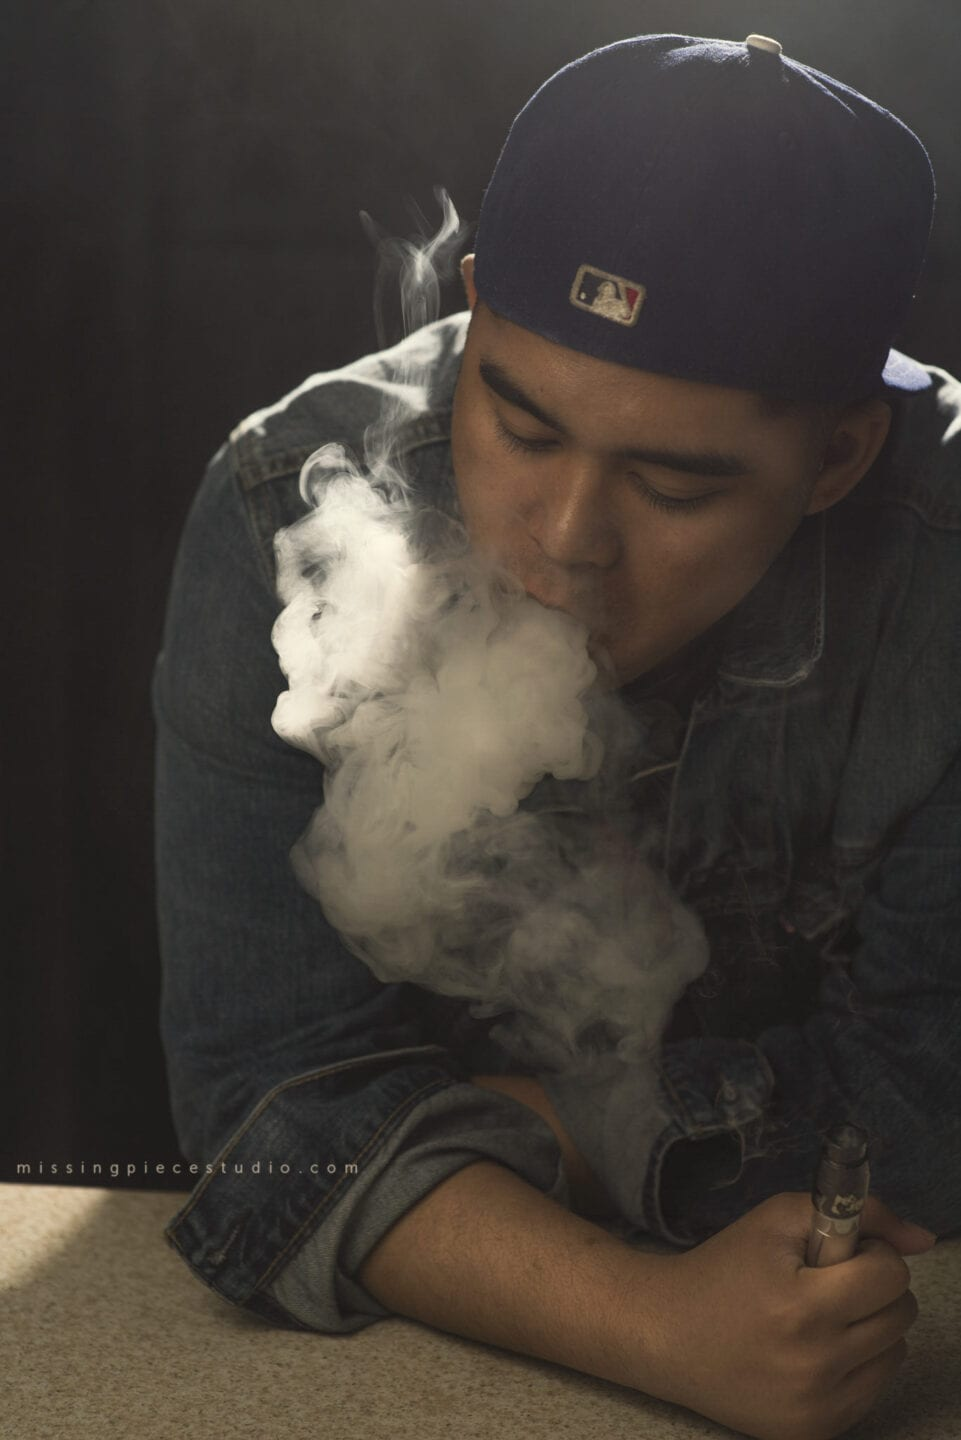 A male blowing out huge cloud of smoke called cloud chasing